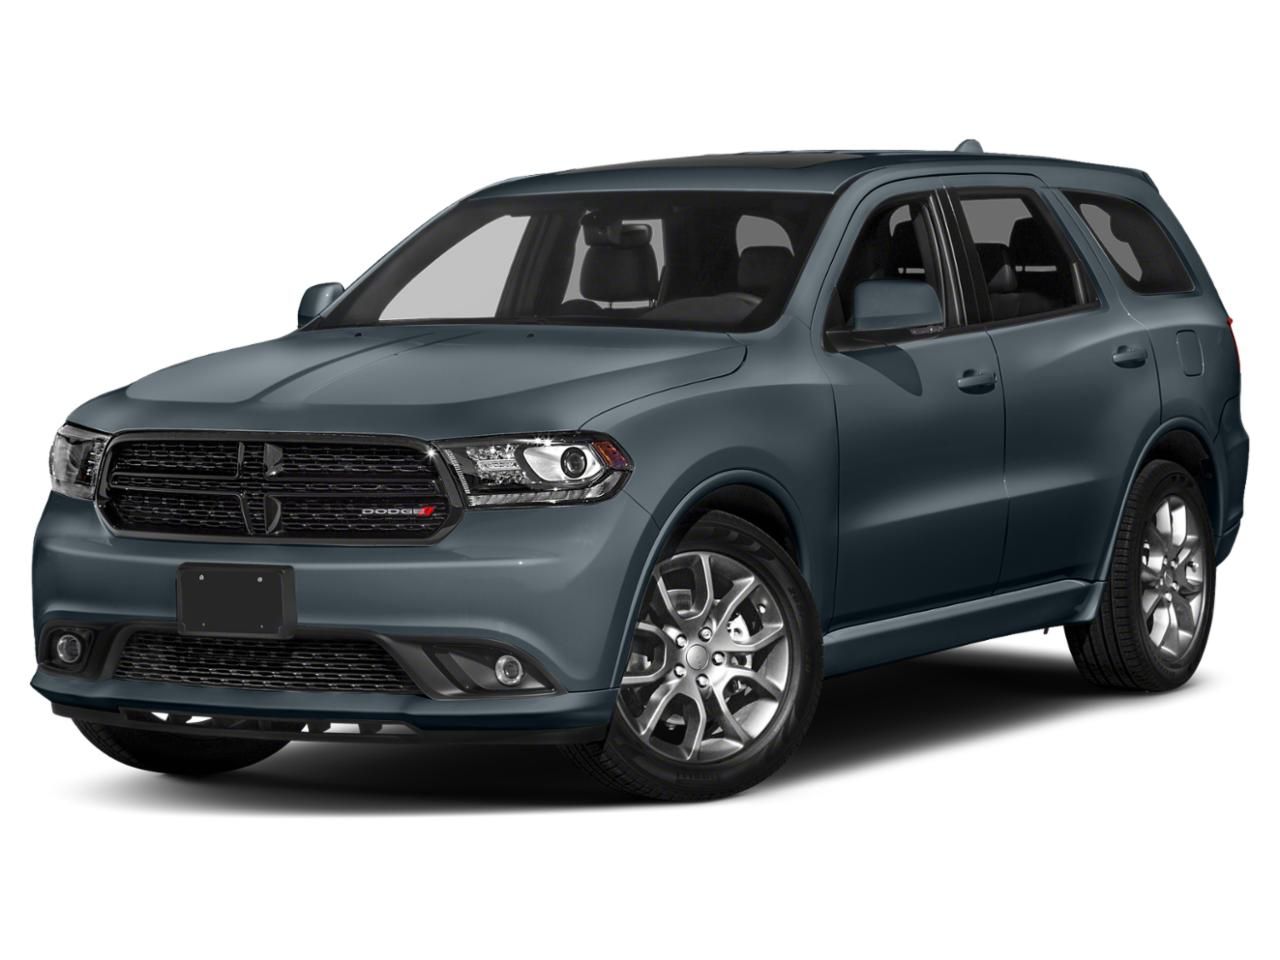 2019 Dodge Durango Vehicle Photo in Baton Rouge, LA 70806